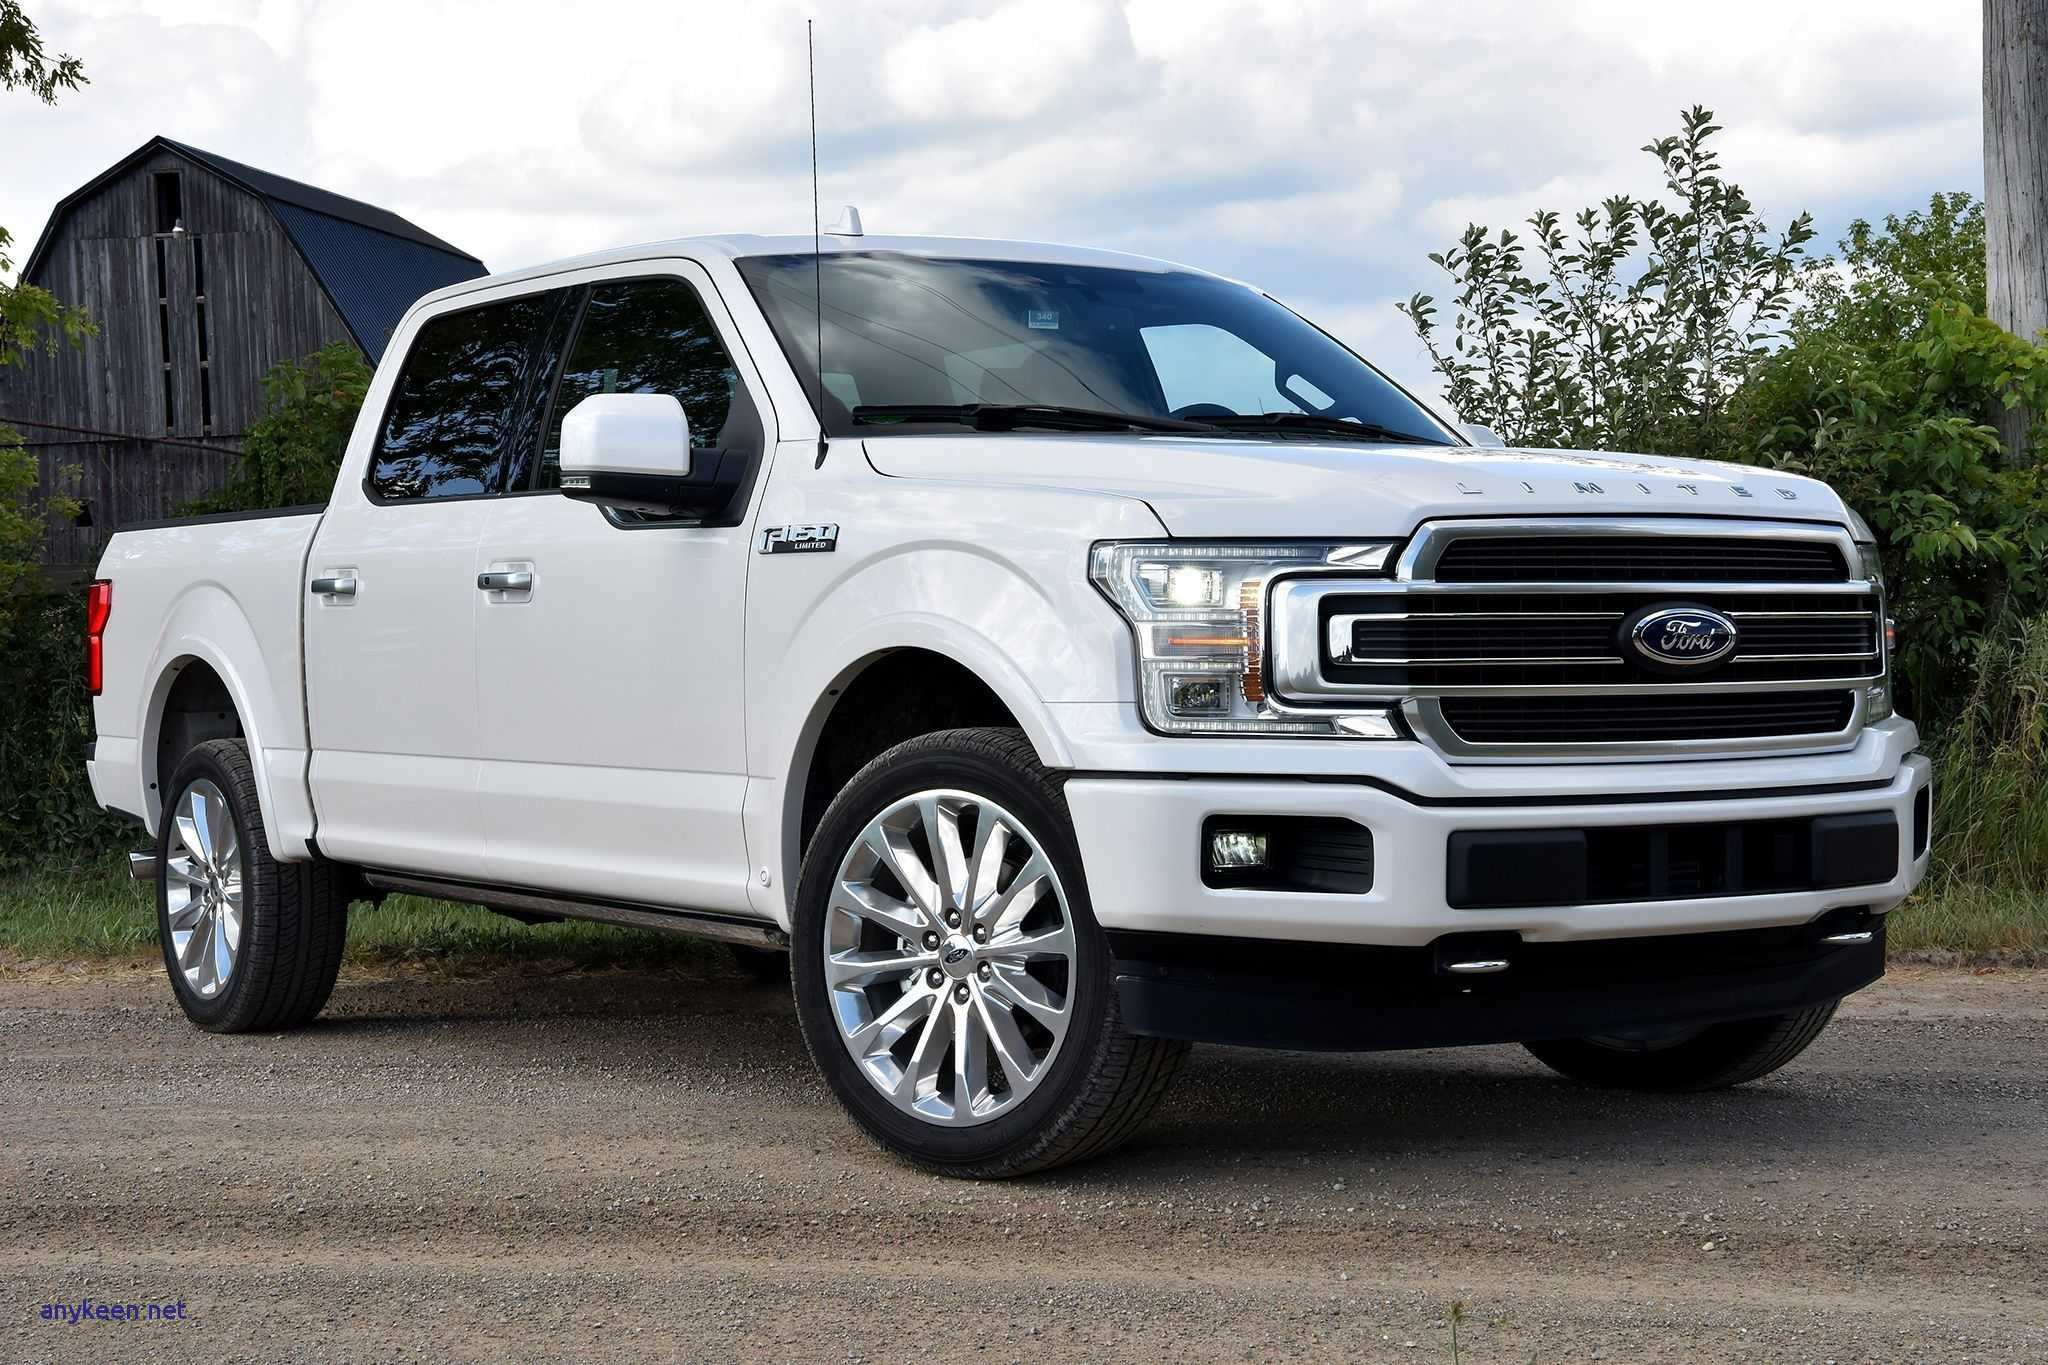 82 All New 2019 Ford F250 Diesel Rumored Announced Release Date And Concept